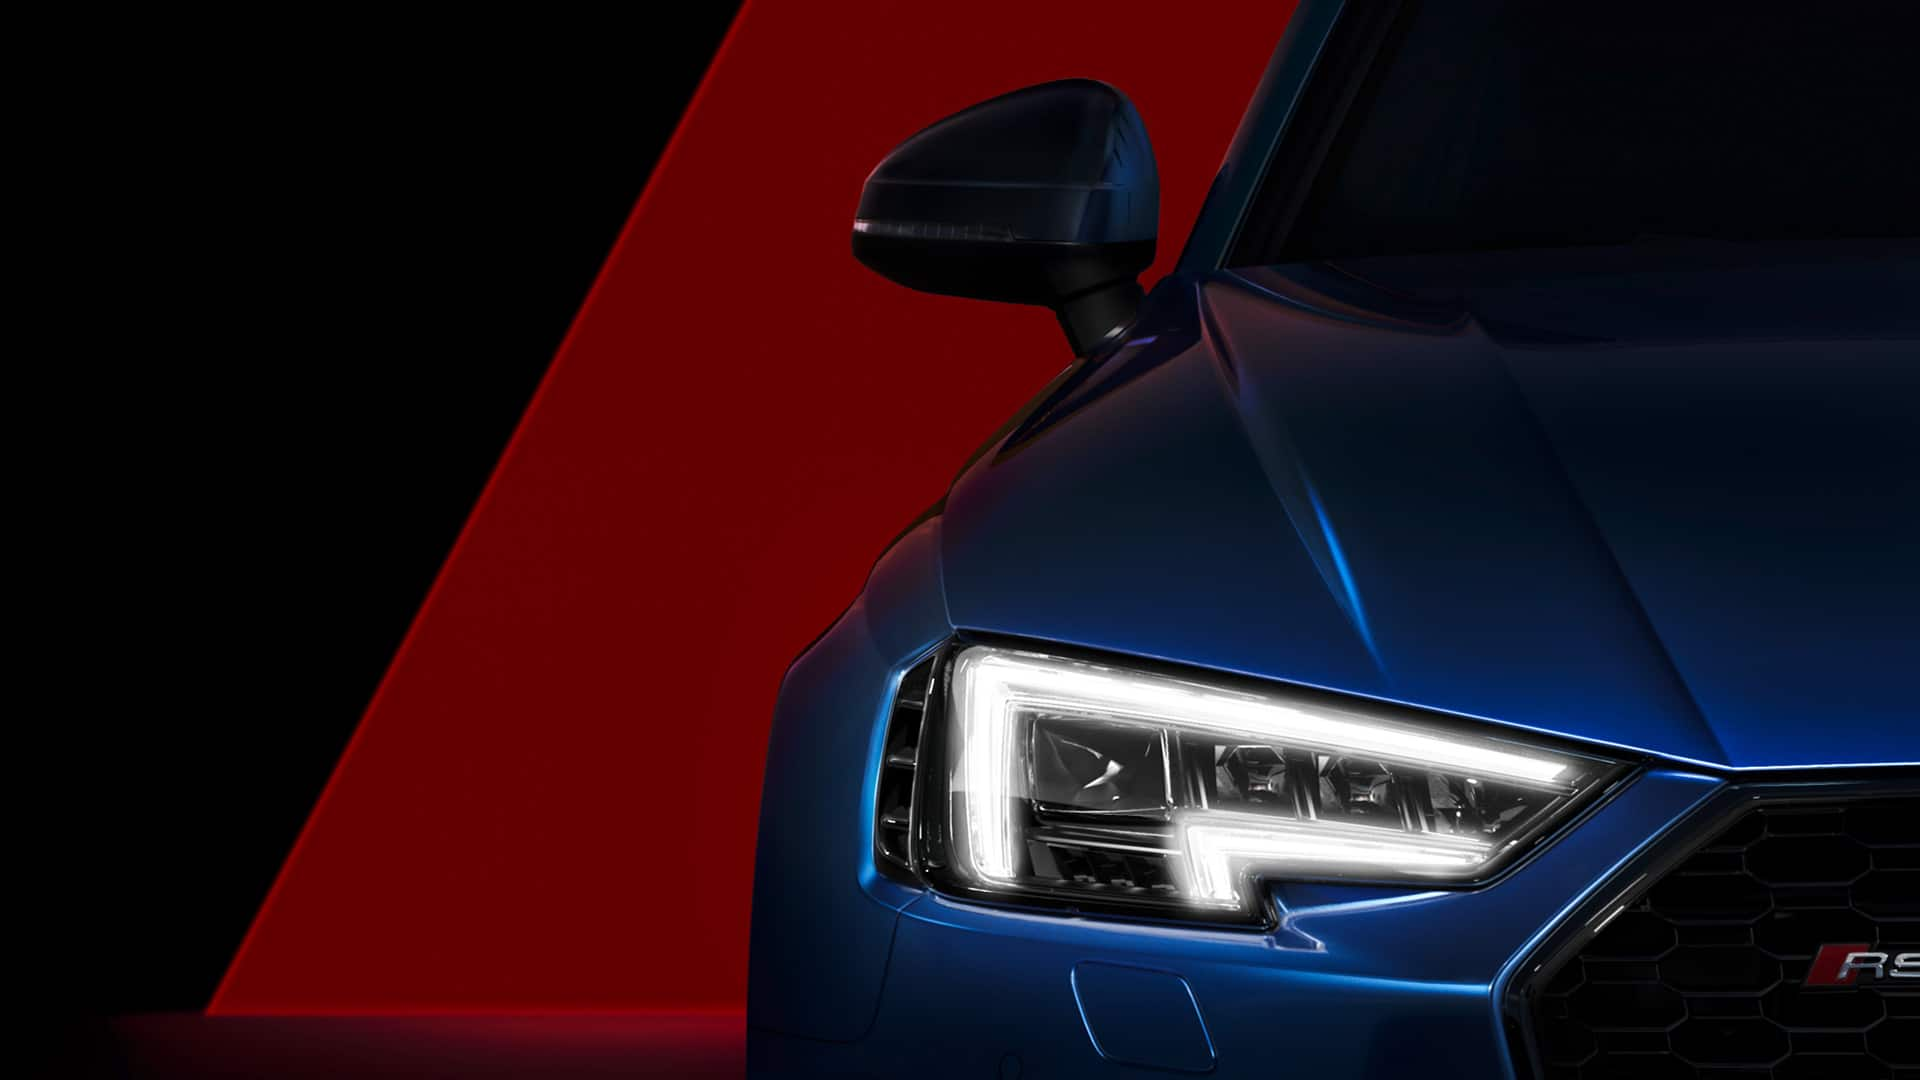 See and be seen: the daytime running lights not only underline the distinctive look of the RS 4 Avant, but add an important safety benefit despite their low watt power consumption.